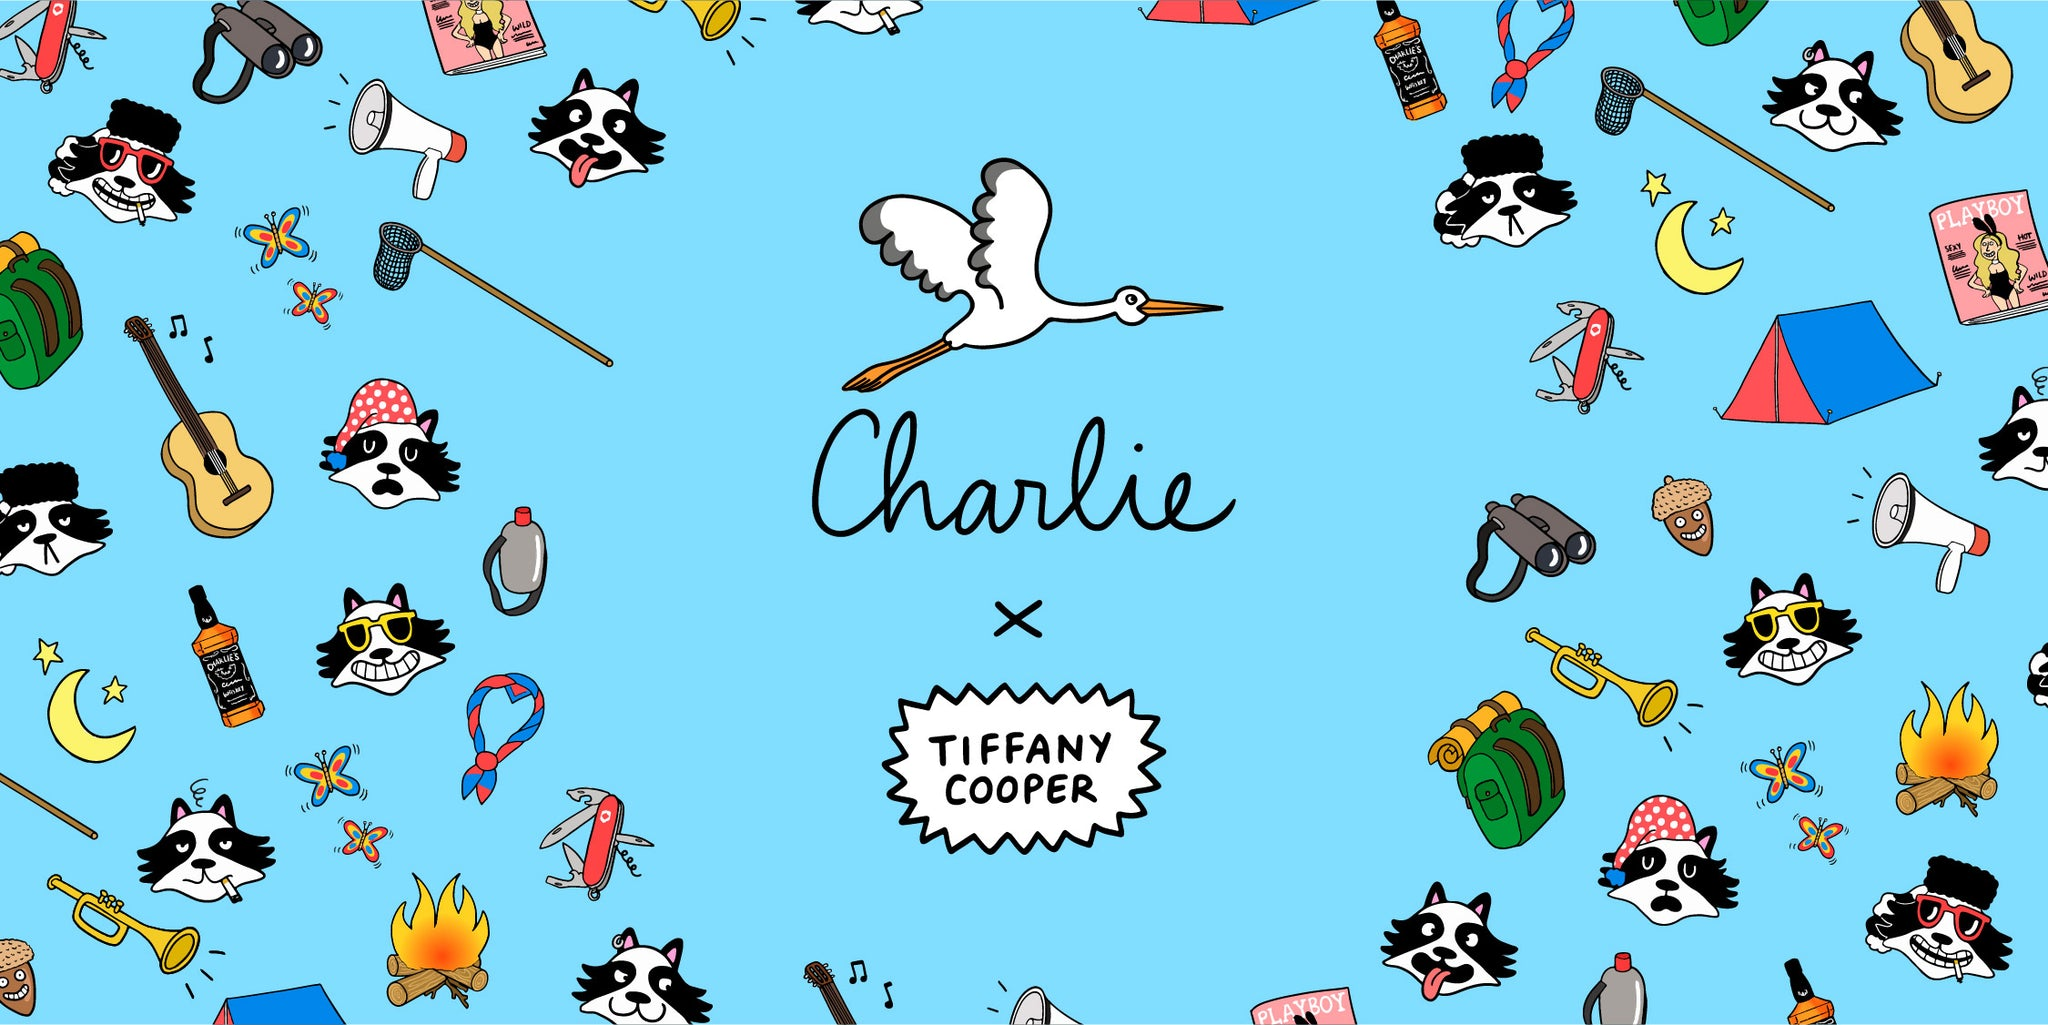 charlie watch x tiffany cooper